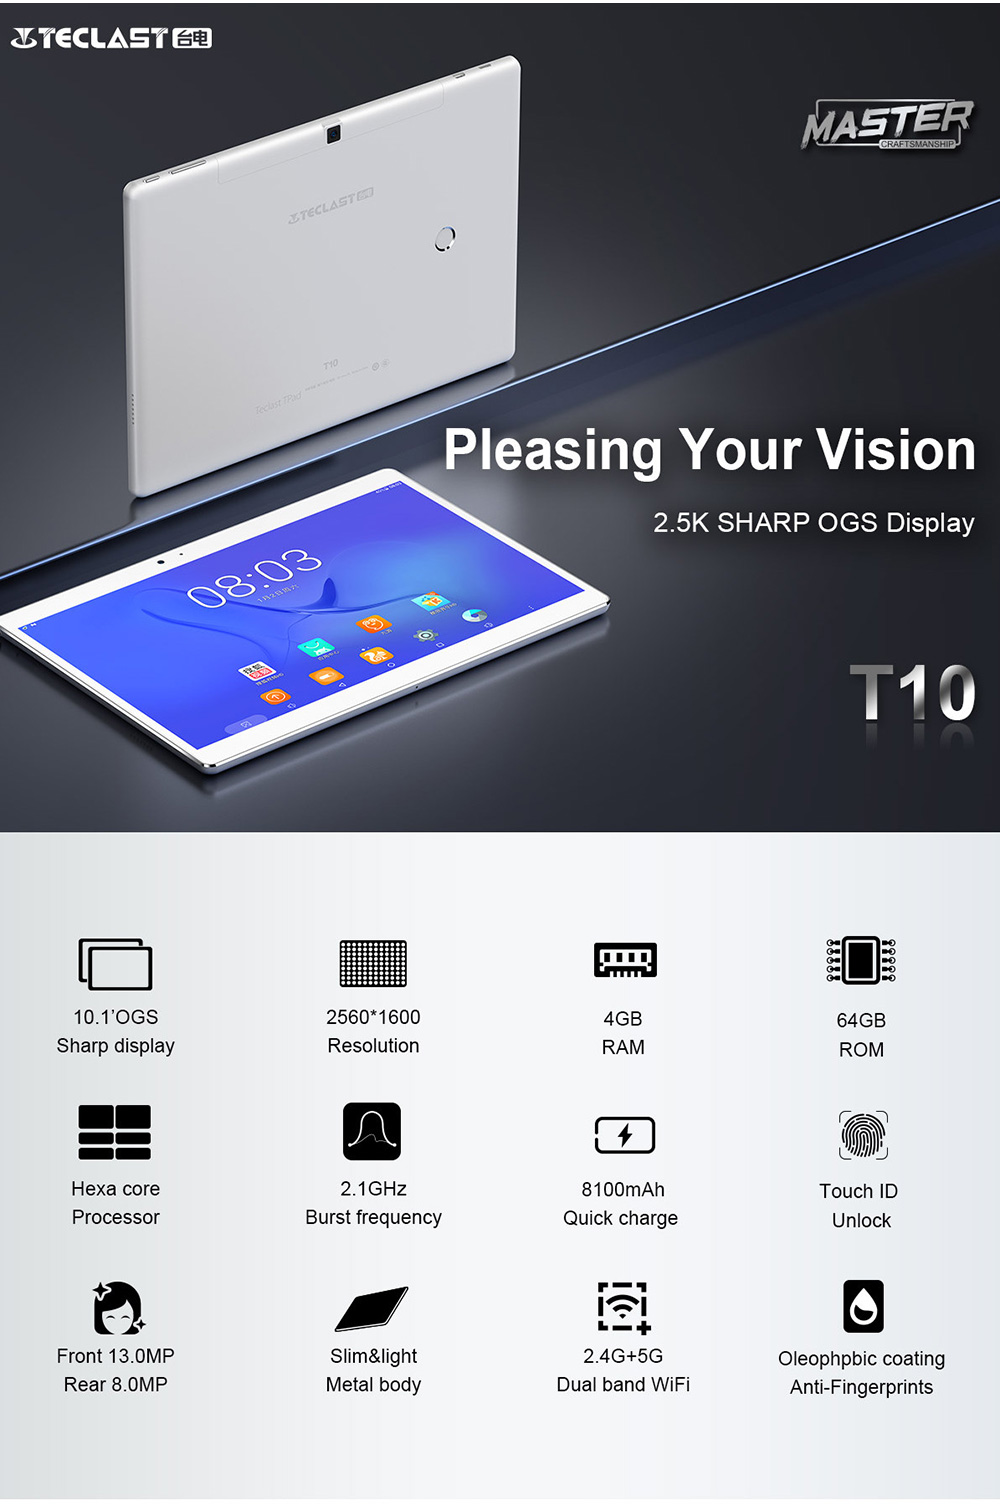 US $290 49 |Teclast Master T10 tablets Android 7 0 tablet pc MT8176 Hexa  Core 4GB RAM 64GB ROM 8 0MP+13 0 MP Tablet PC HDMI android tablet-in  Tablets